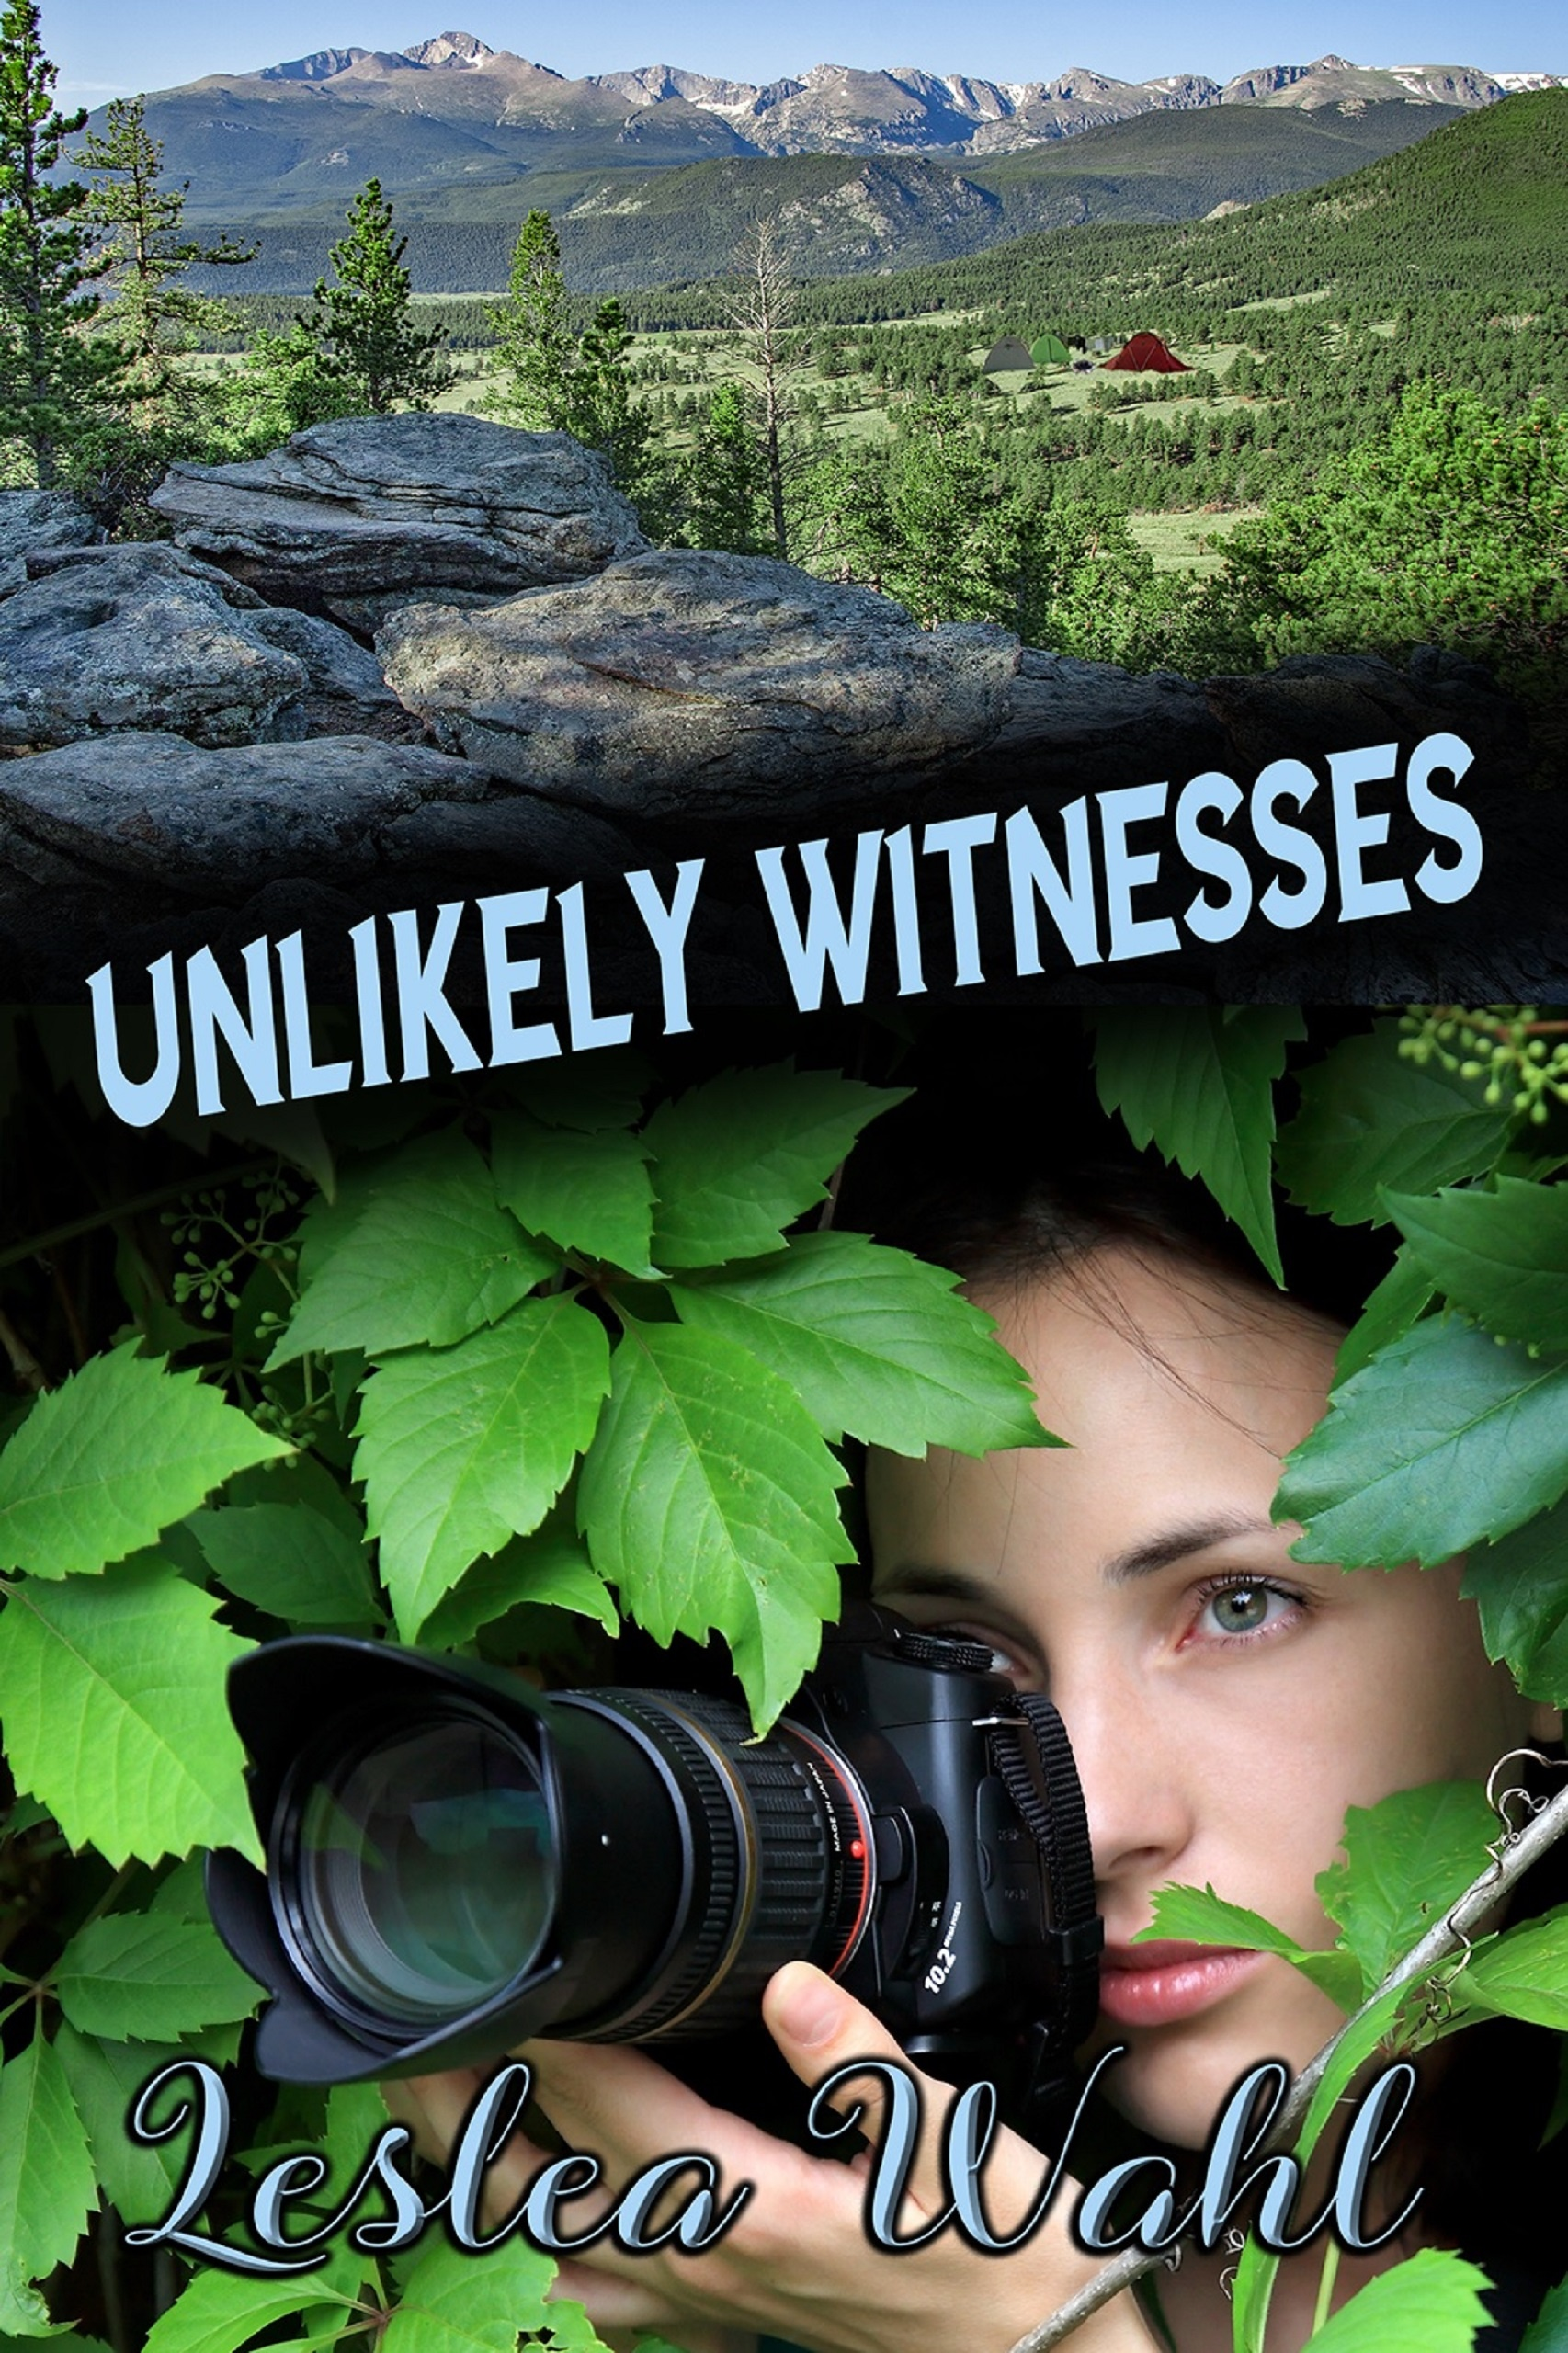 Unlikely_Witnesses_med_300